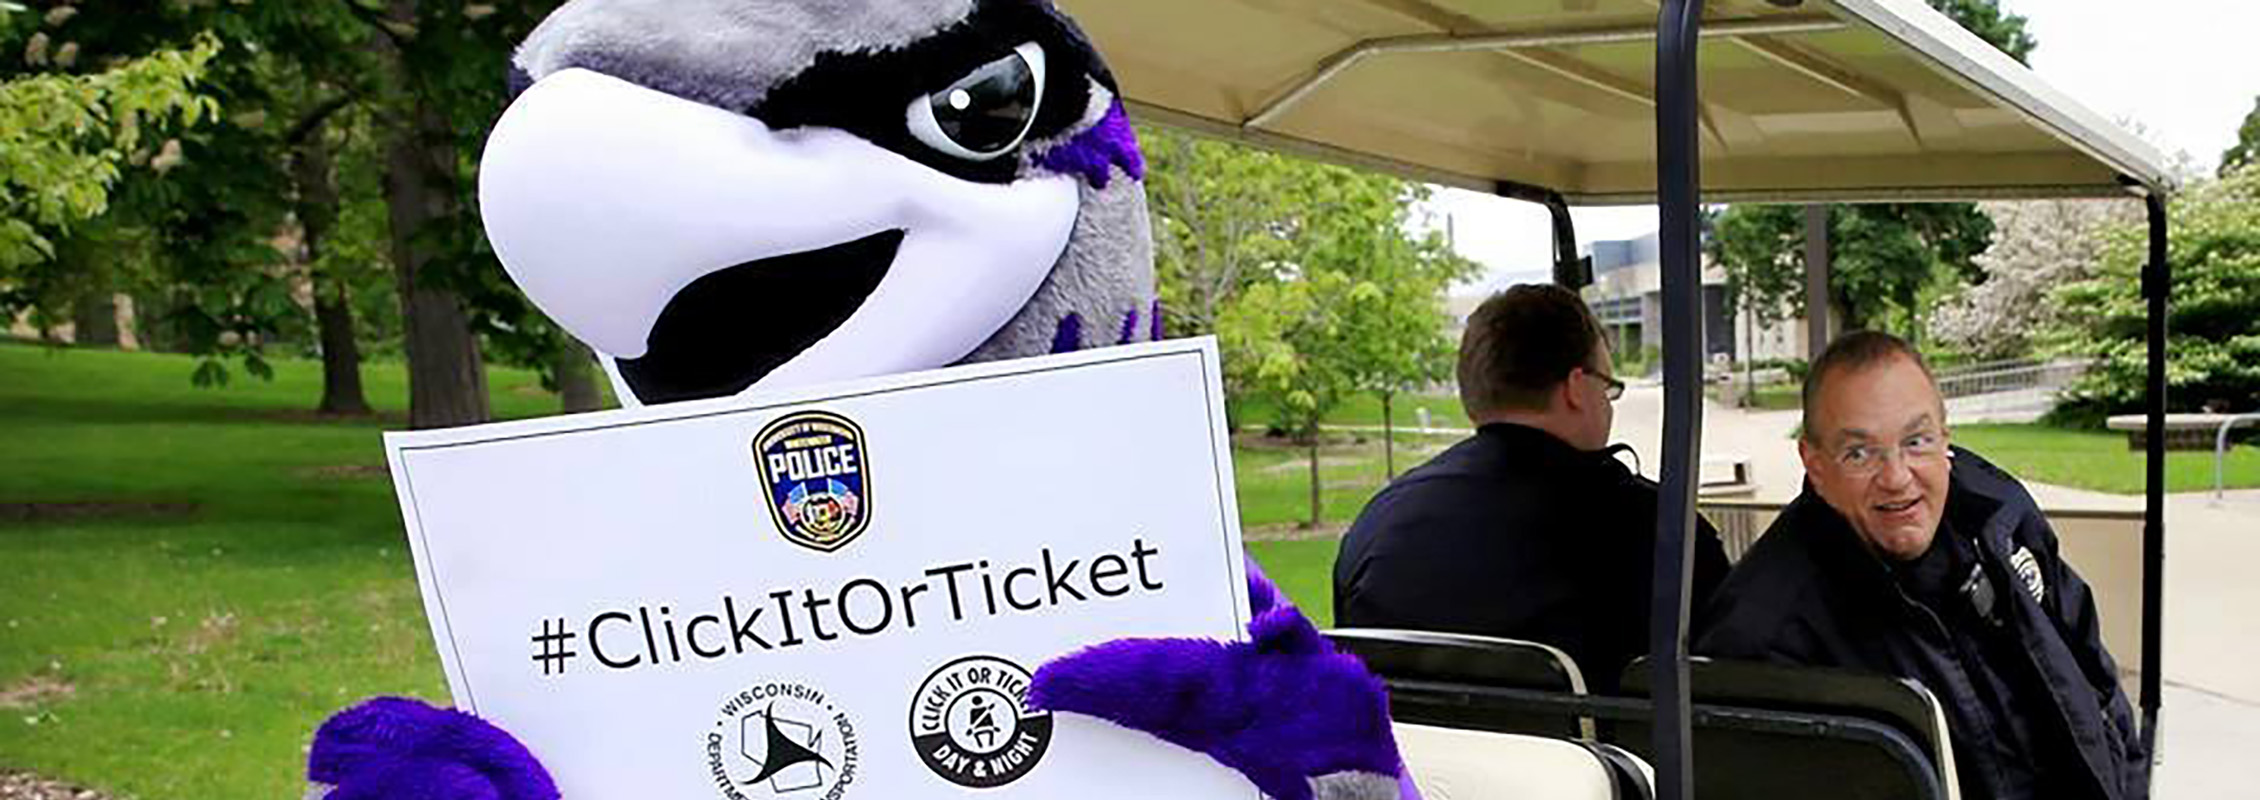 UW-Whitewater Police Department with Willie Warhawk